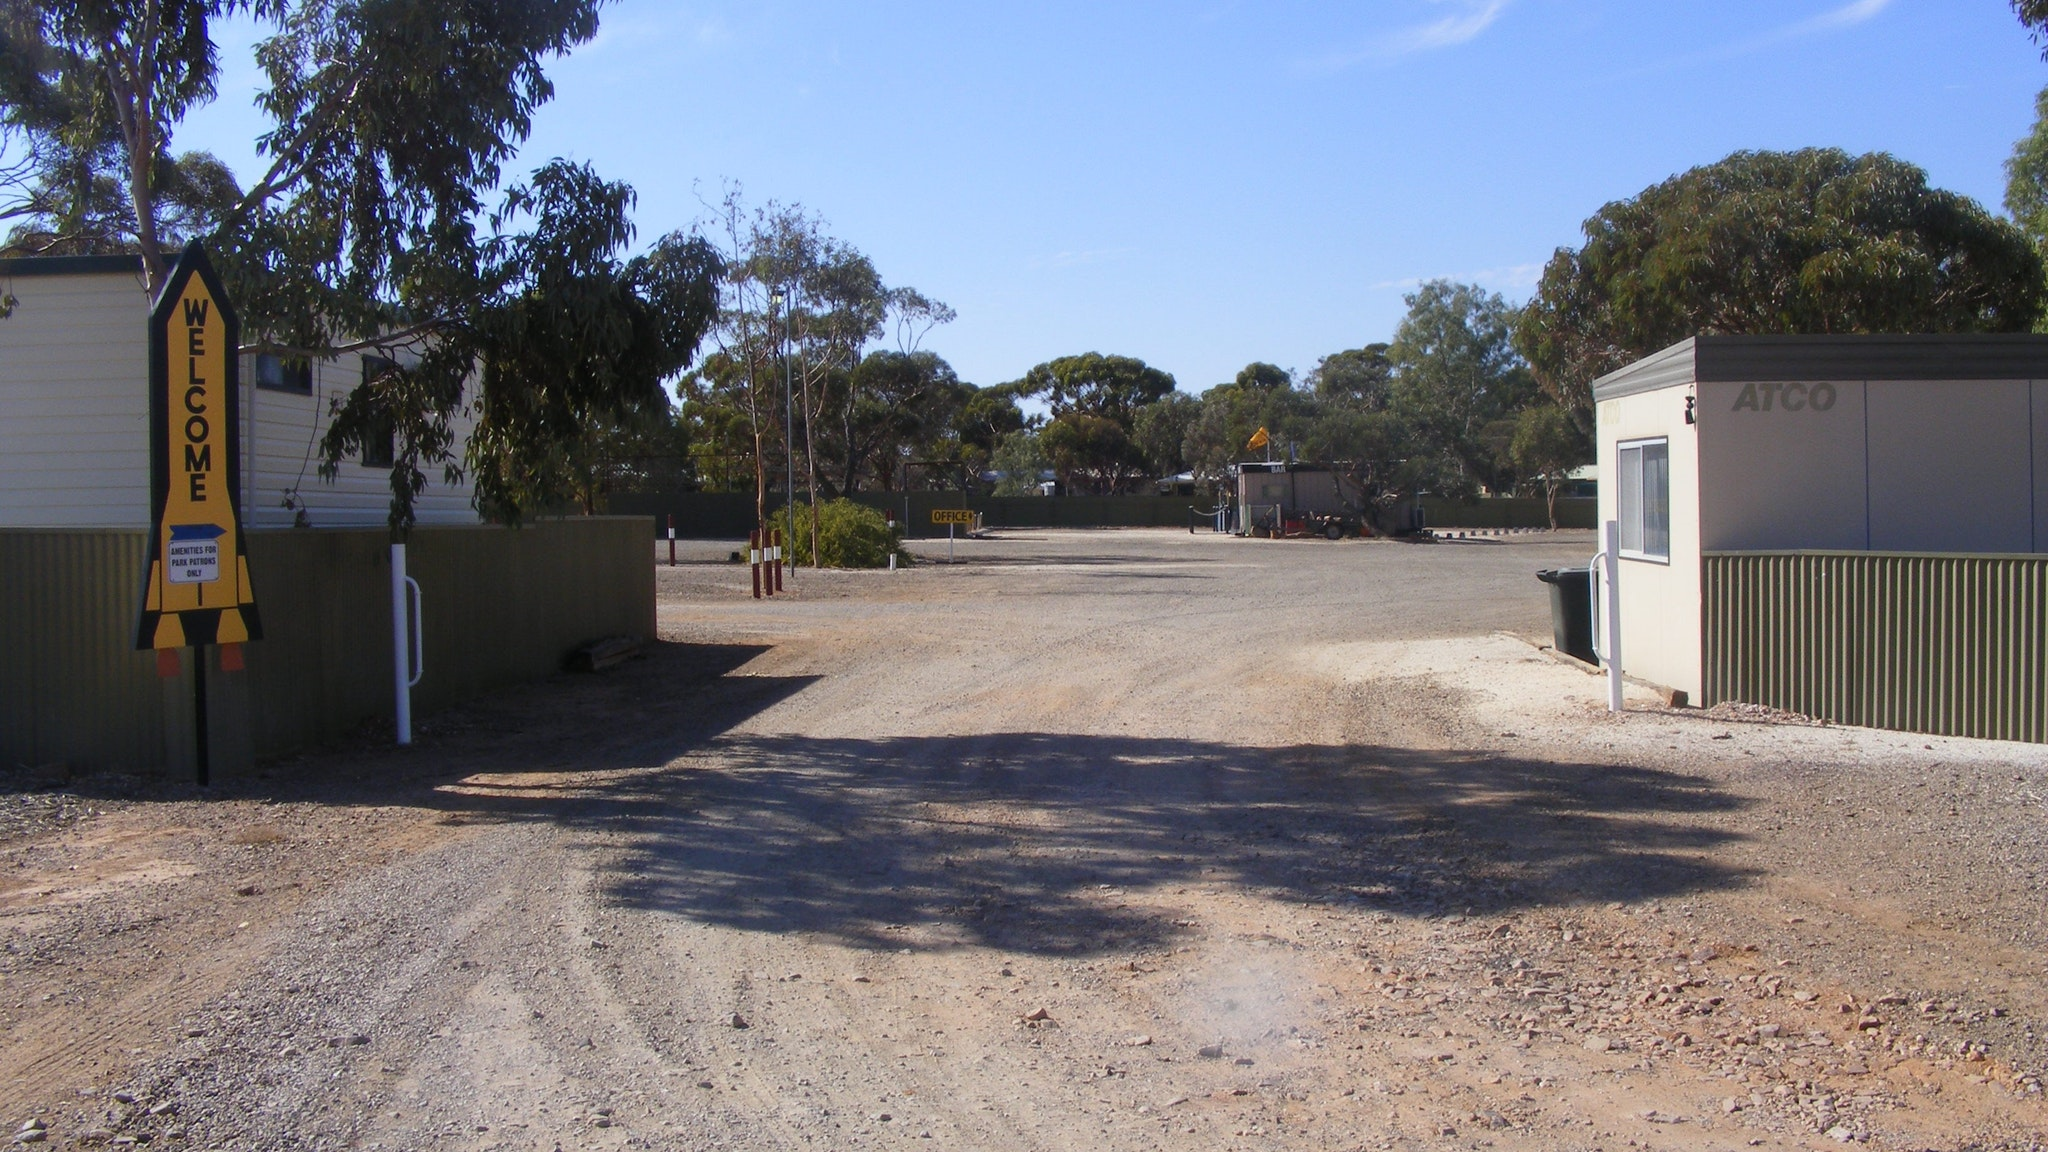 Woomera Traveller's Village and Caravan Park - Stayed